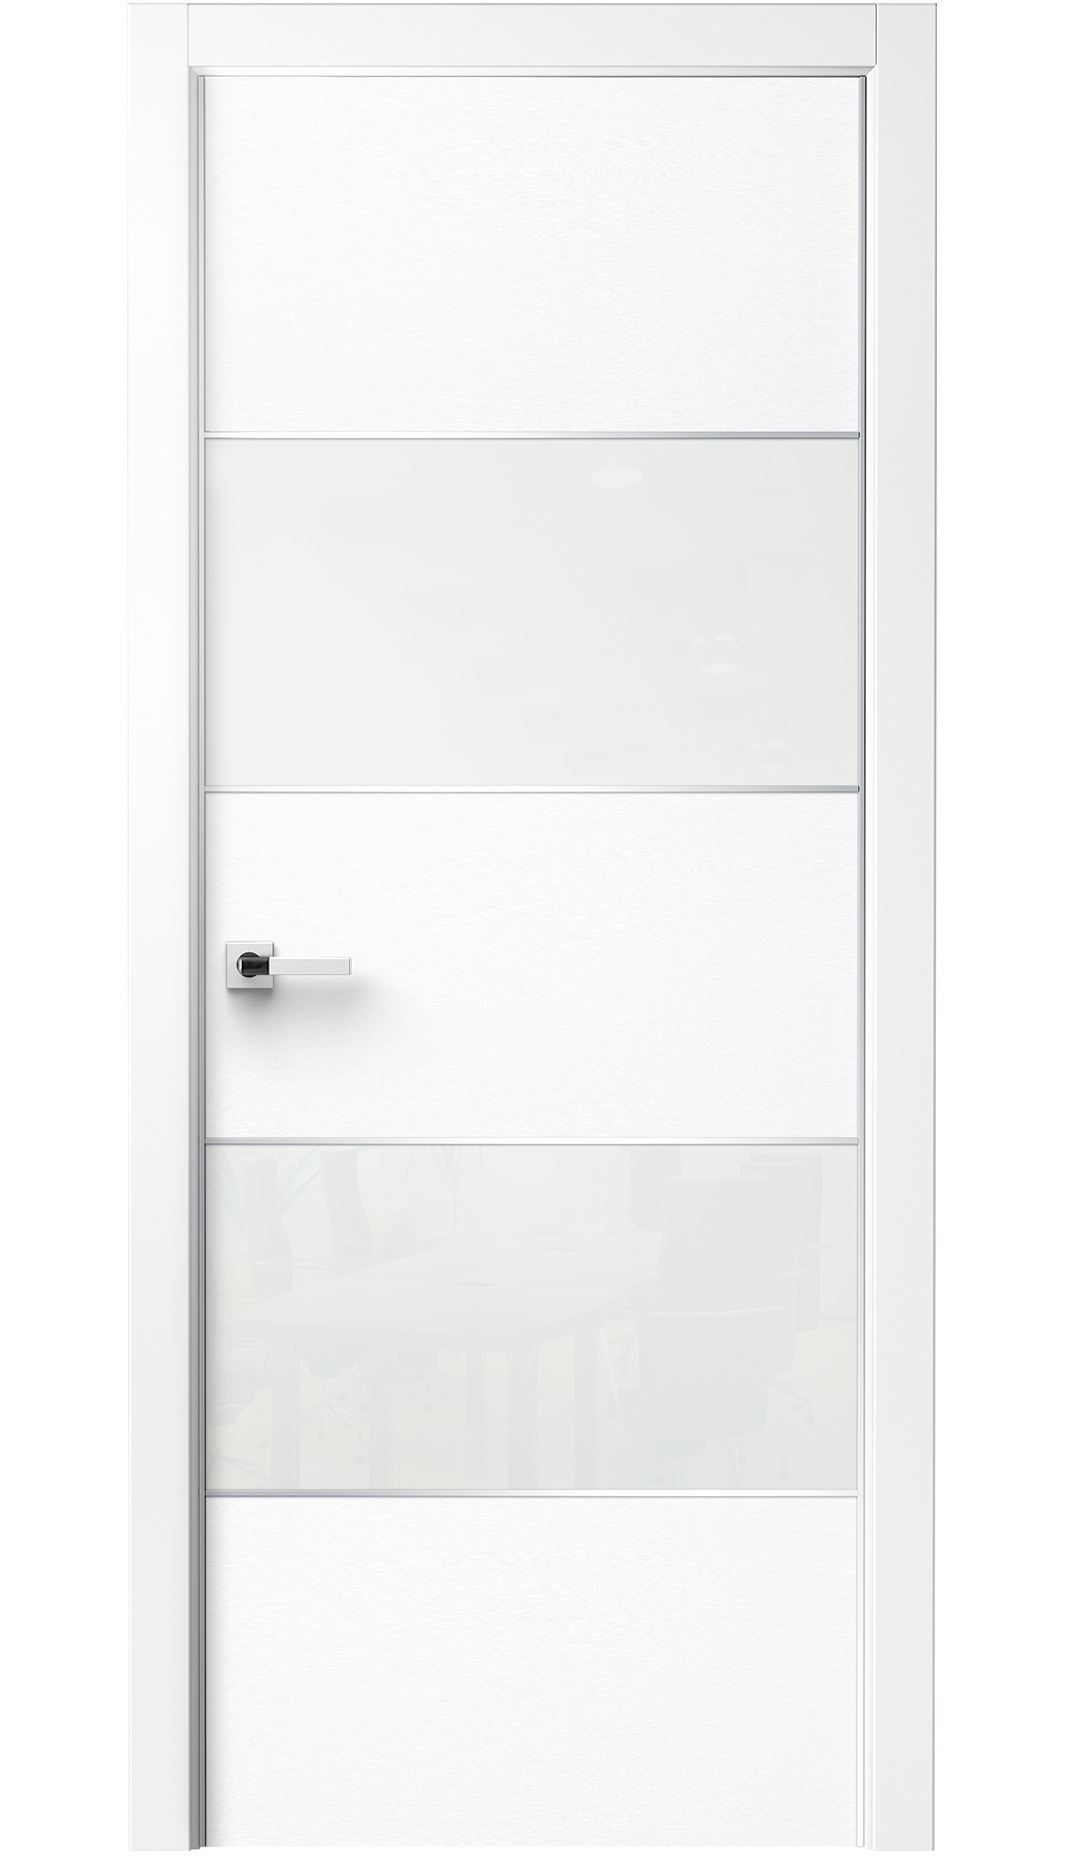 Image Titanium Interior Door Bianco Noble / White Glass 0